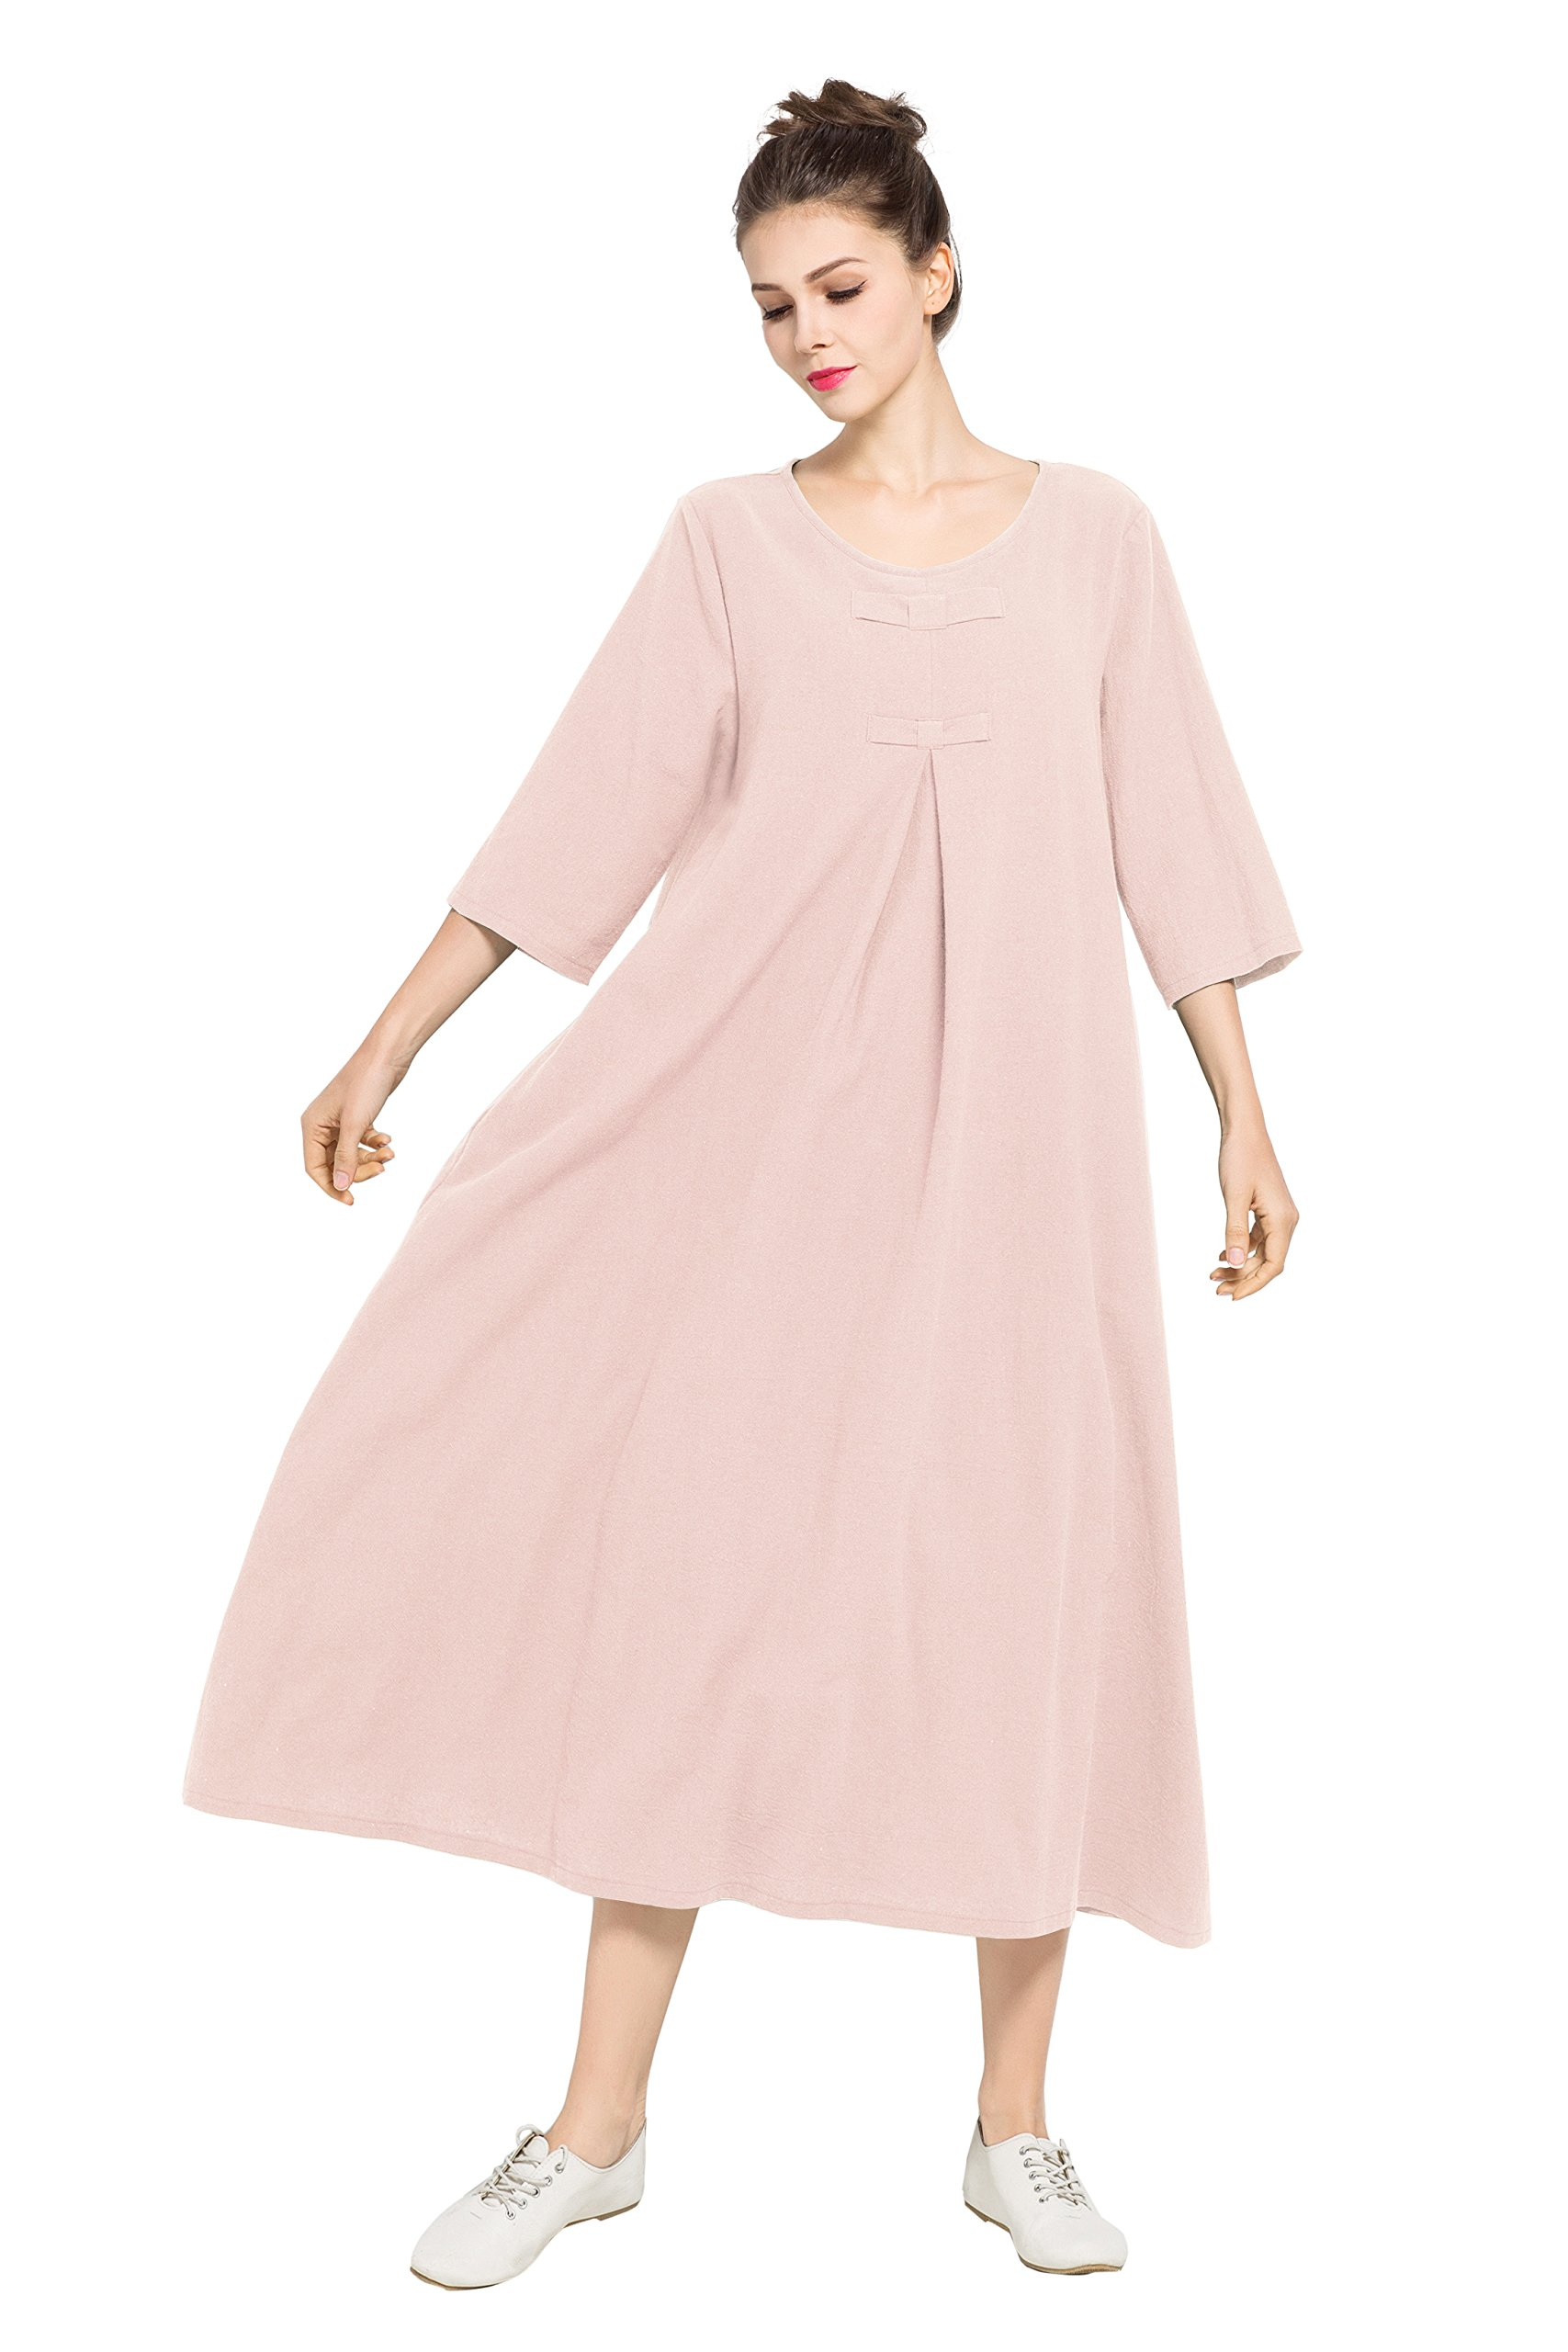 Anysize Spring Summer Dress Soft Linen Cotton Maxi Dress Plus Size Clothing F120A